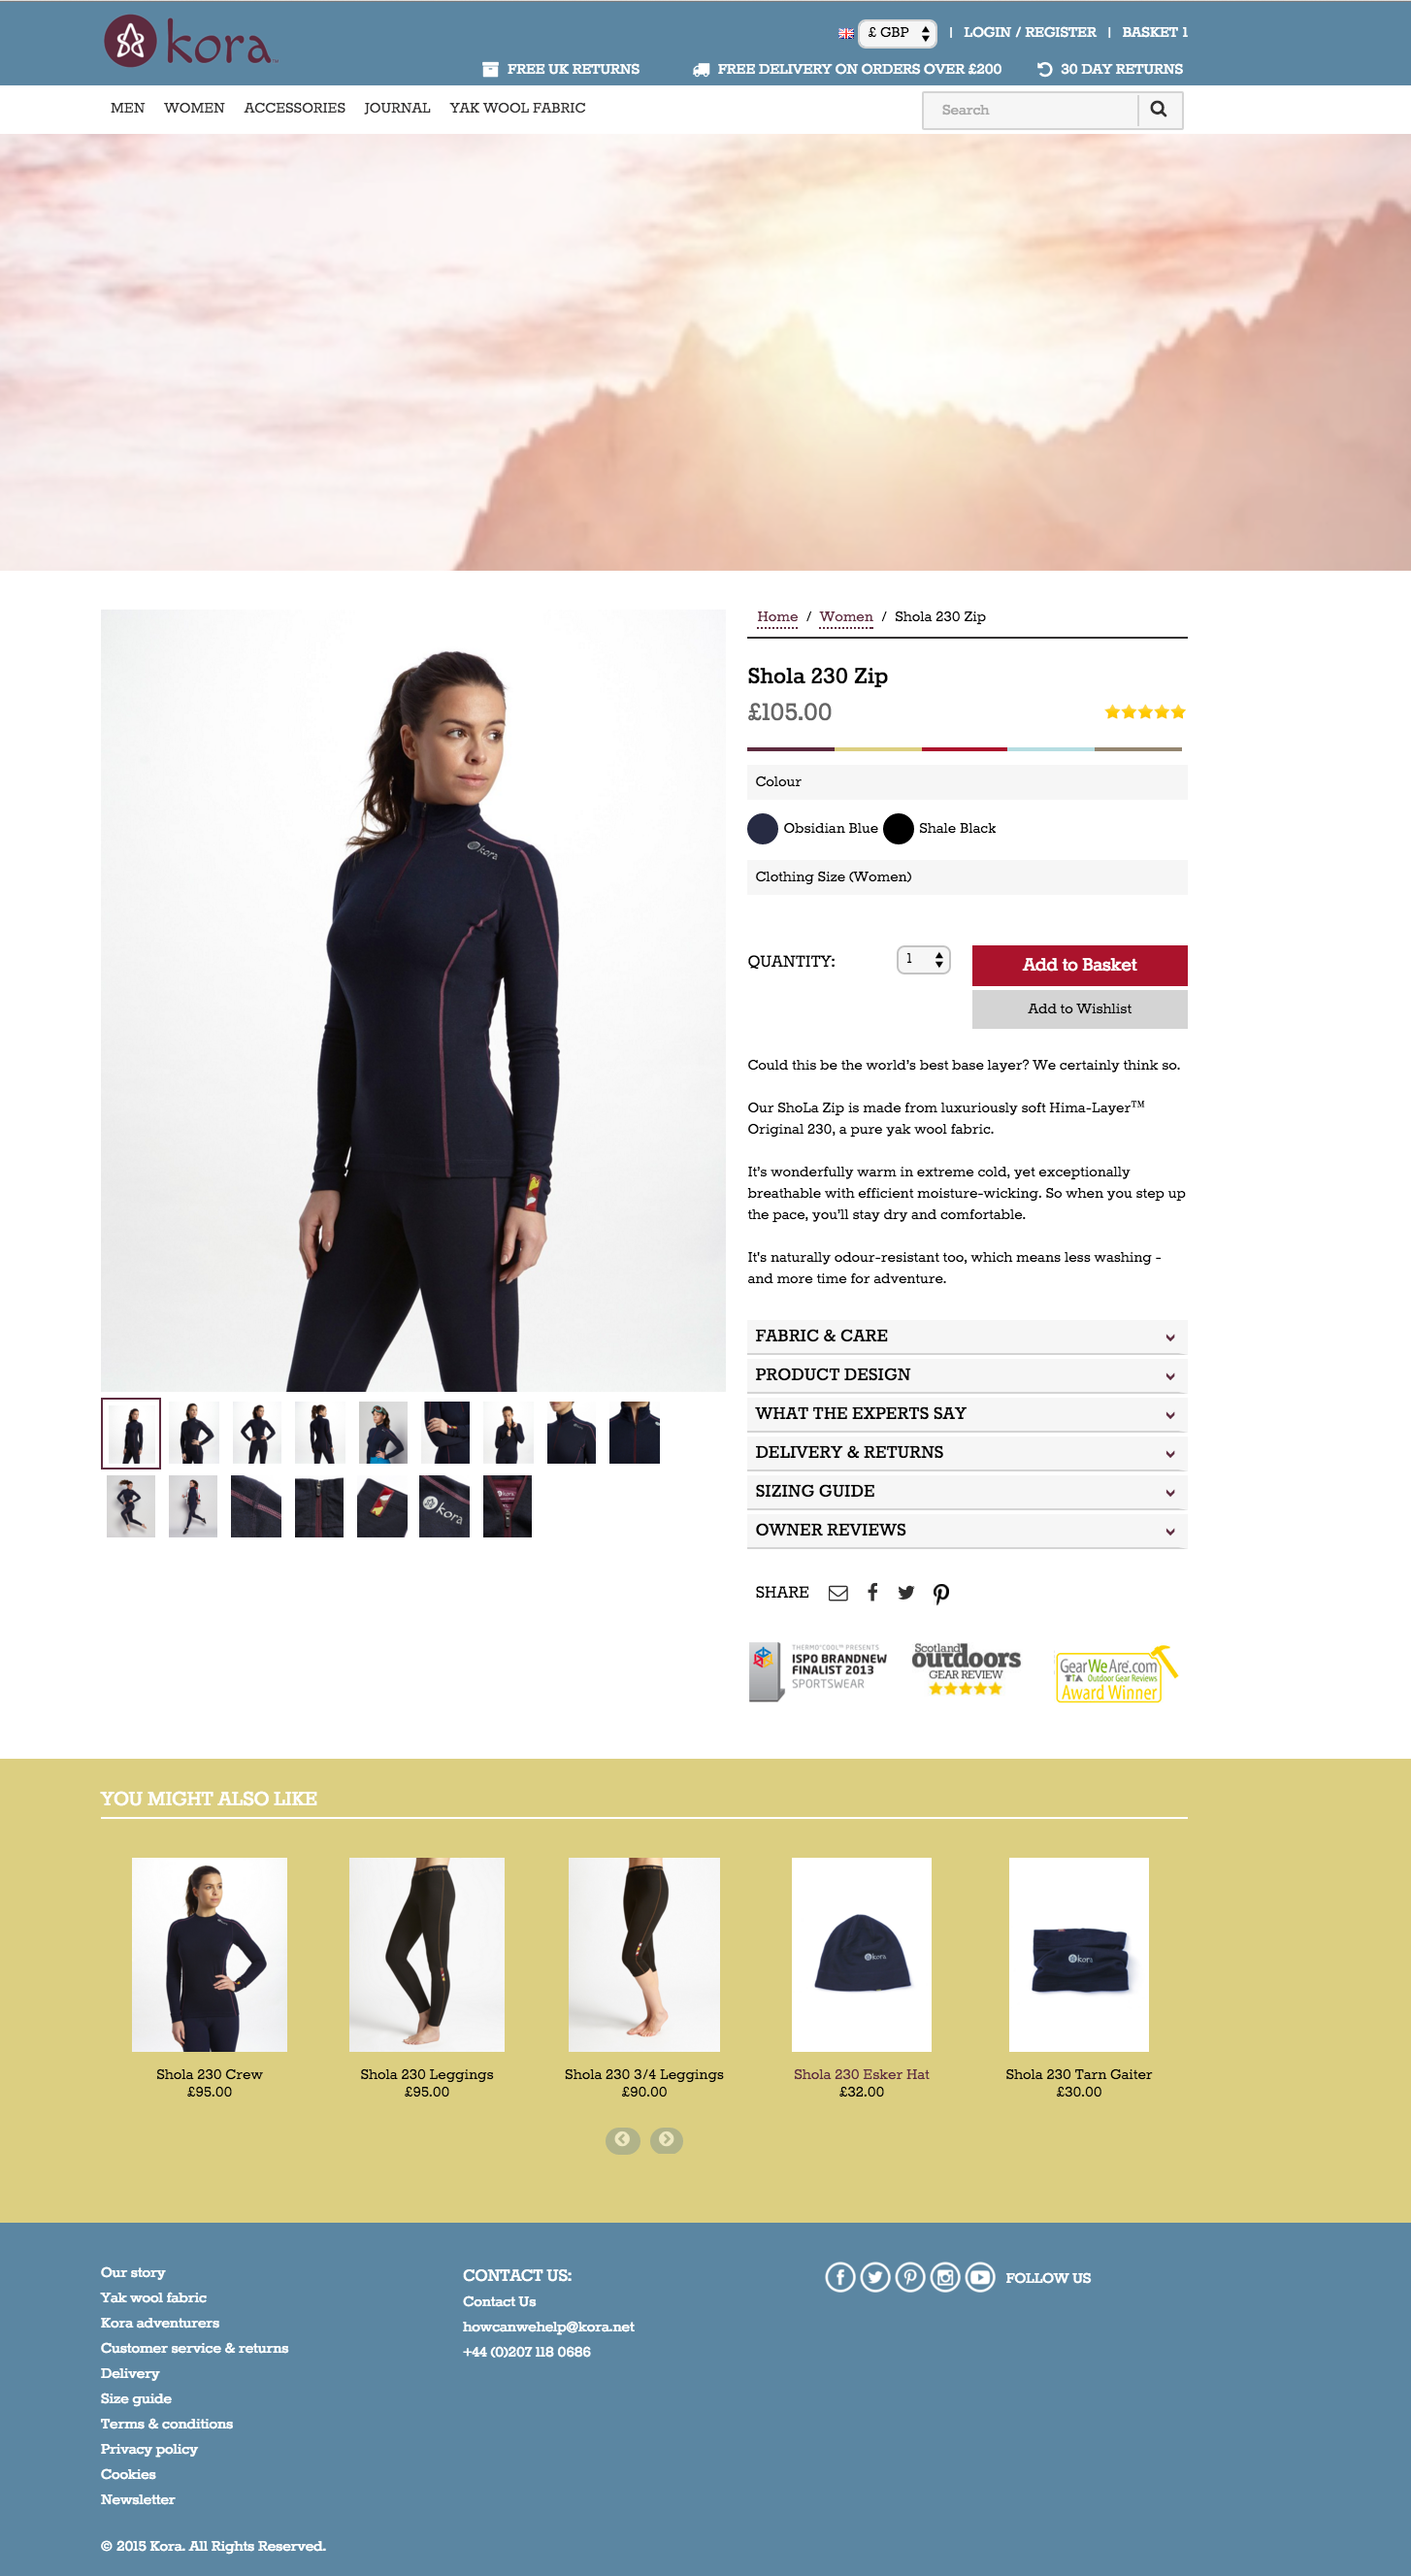 kora Ecommerce Website Design